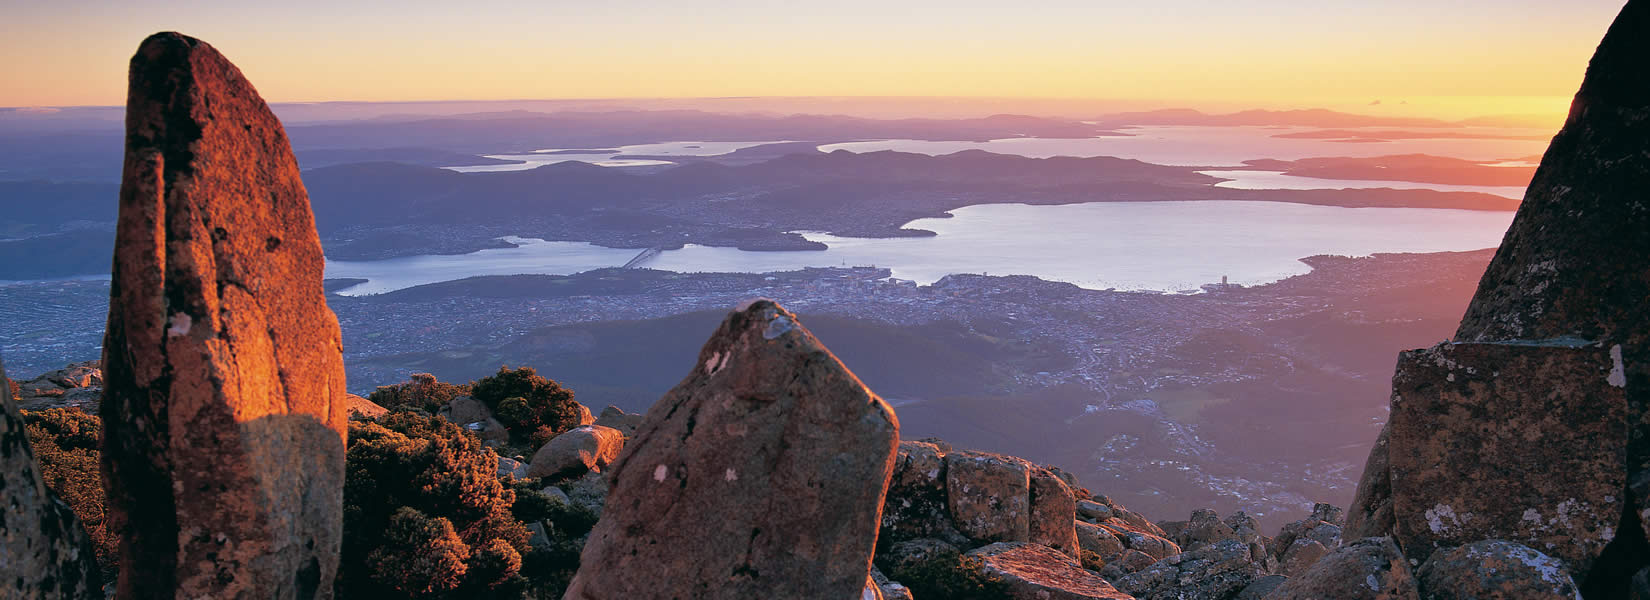 hobart-from-mount-wellington-garry-moore-tourism-tasmania_large.jpg